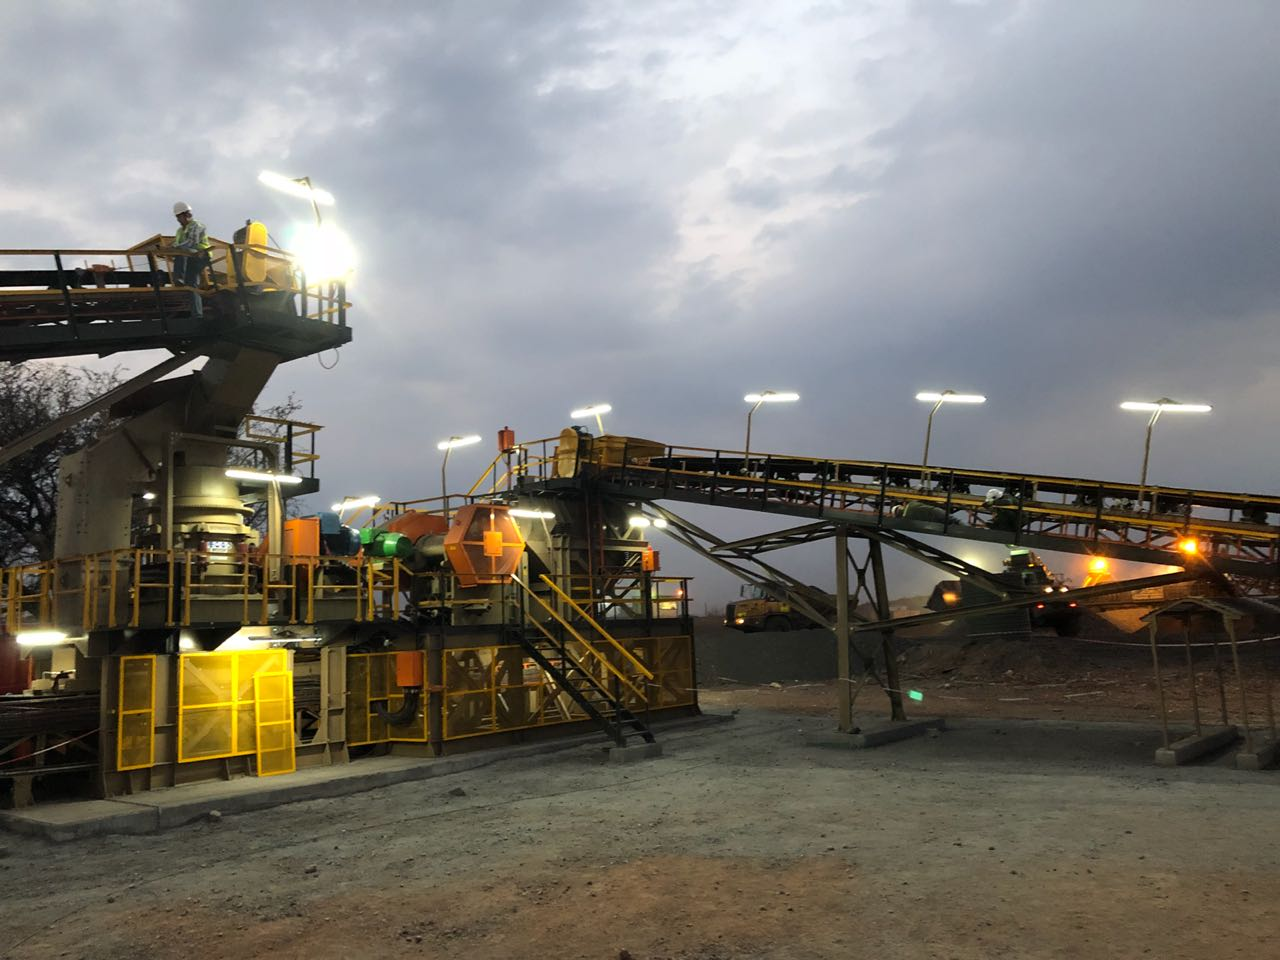 A Manganese Crushing & Screening Plant for MET63